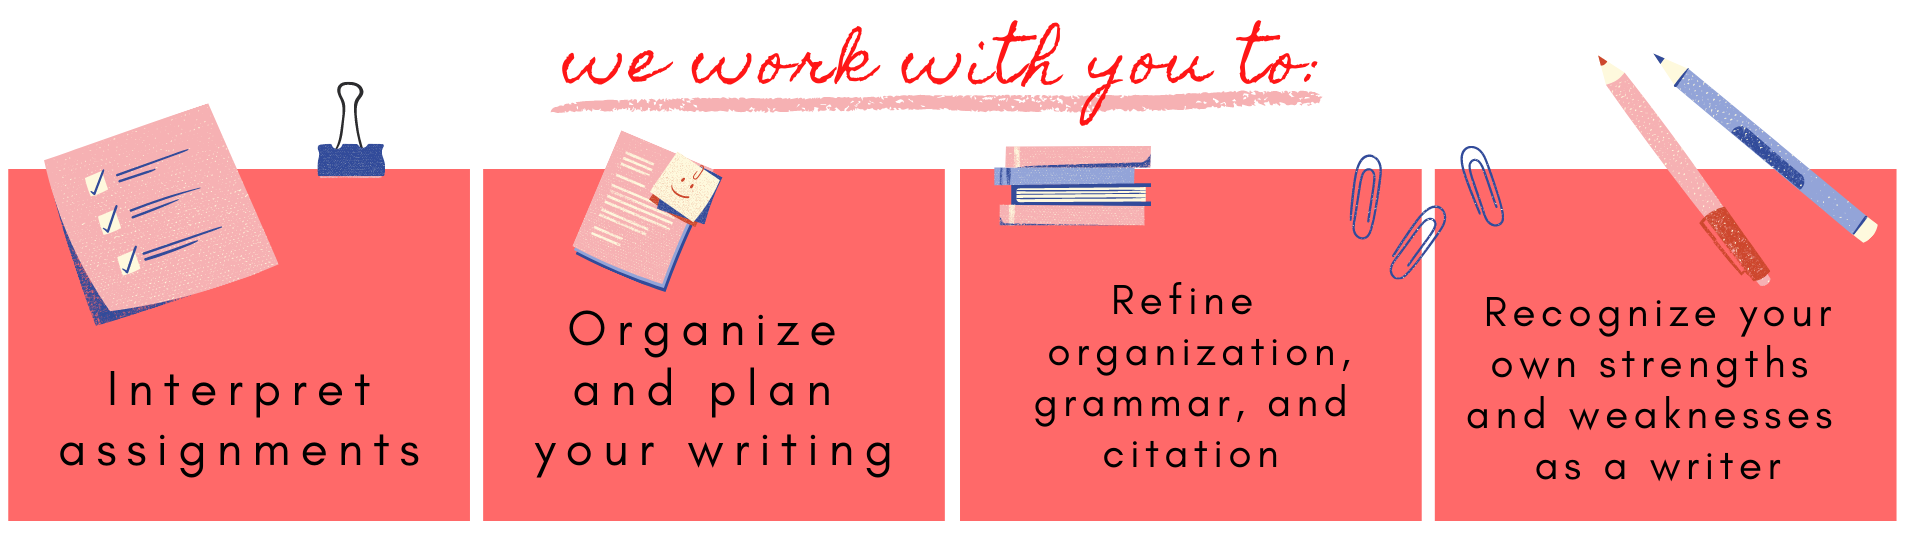 We work with you to interpret assignments; organize and plan your writing process; refine organization, argument, grammar, and citation; and recognize your own strengths and weaknesses as a writer.